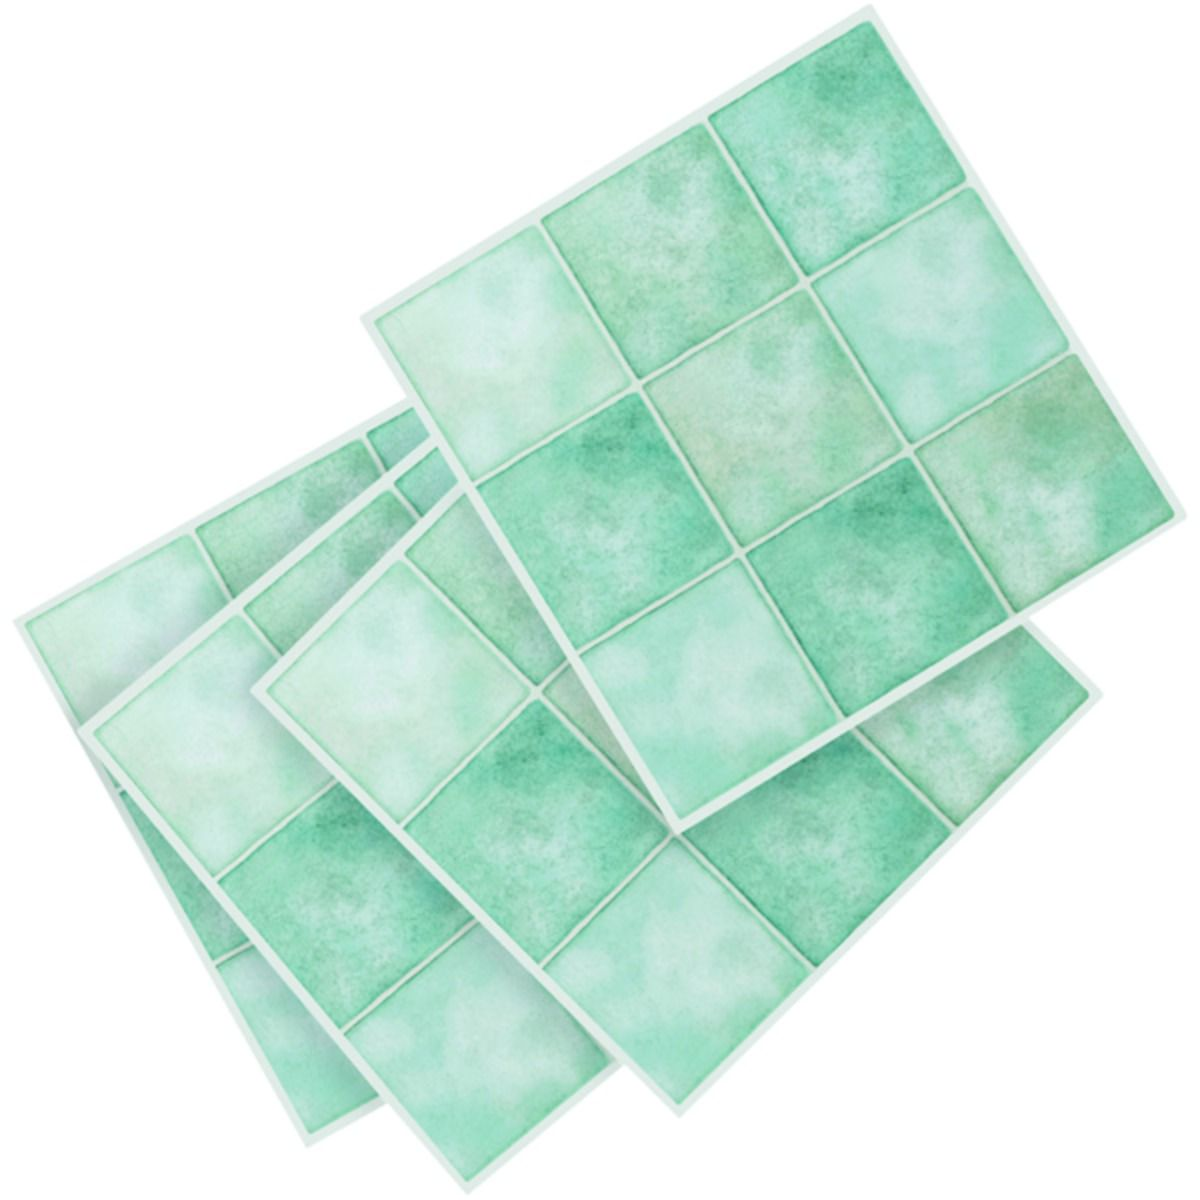 Compare cheap offers & prices of Wickes Aqua Squares Self Adhesive Vinyl Tiles 305 x 305mm - Pack of 11 manufactured by Wickes